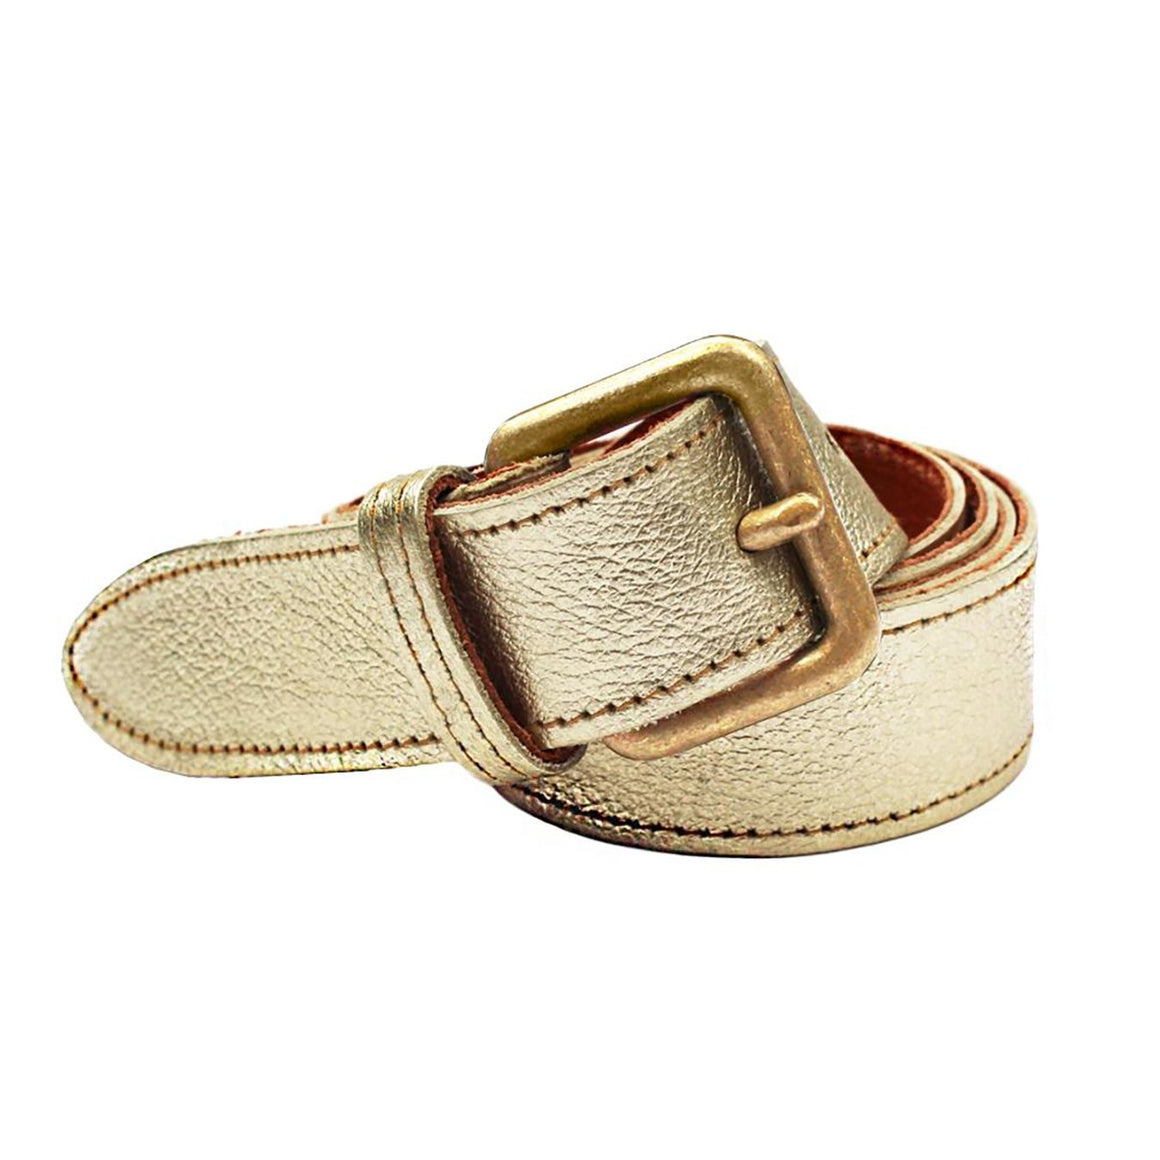 Metallic Cowhide Belt Gold - Villancher Gifts &  Fashion Accessories